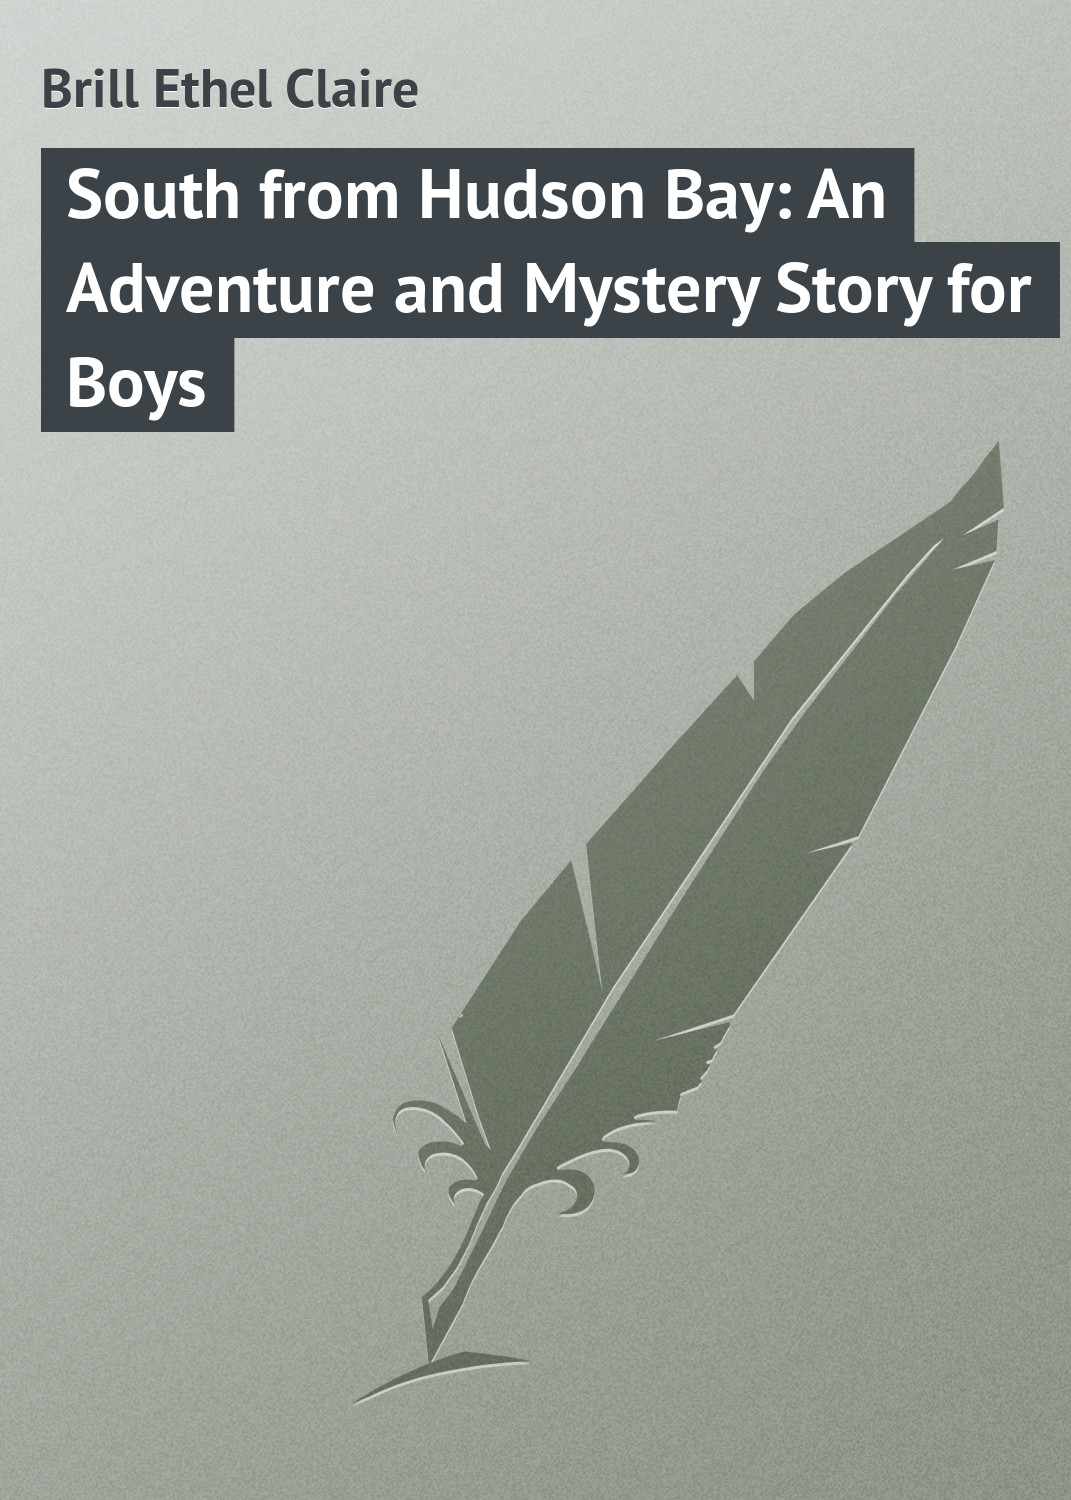 Brill Ethel Claire South from Hudson Bay: An Adventure and Mystery Story for Boys